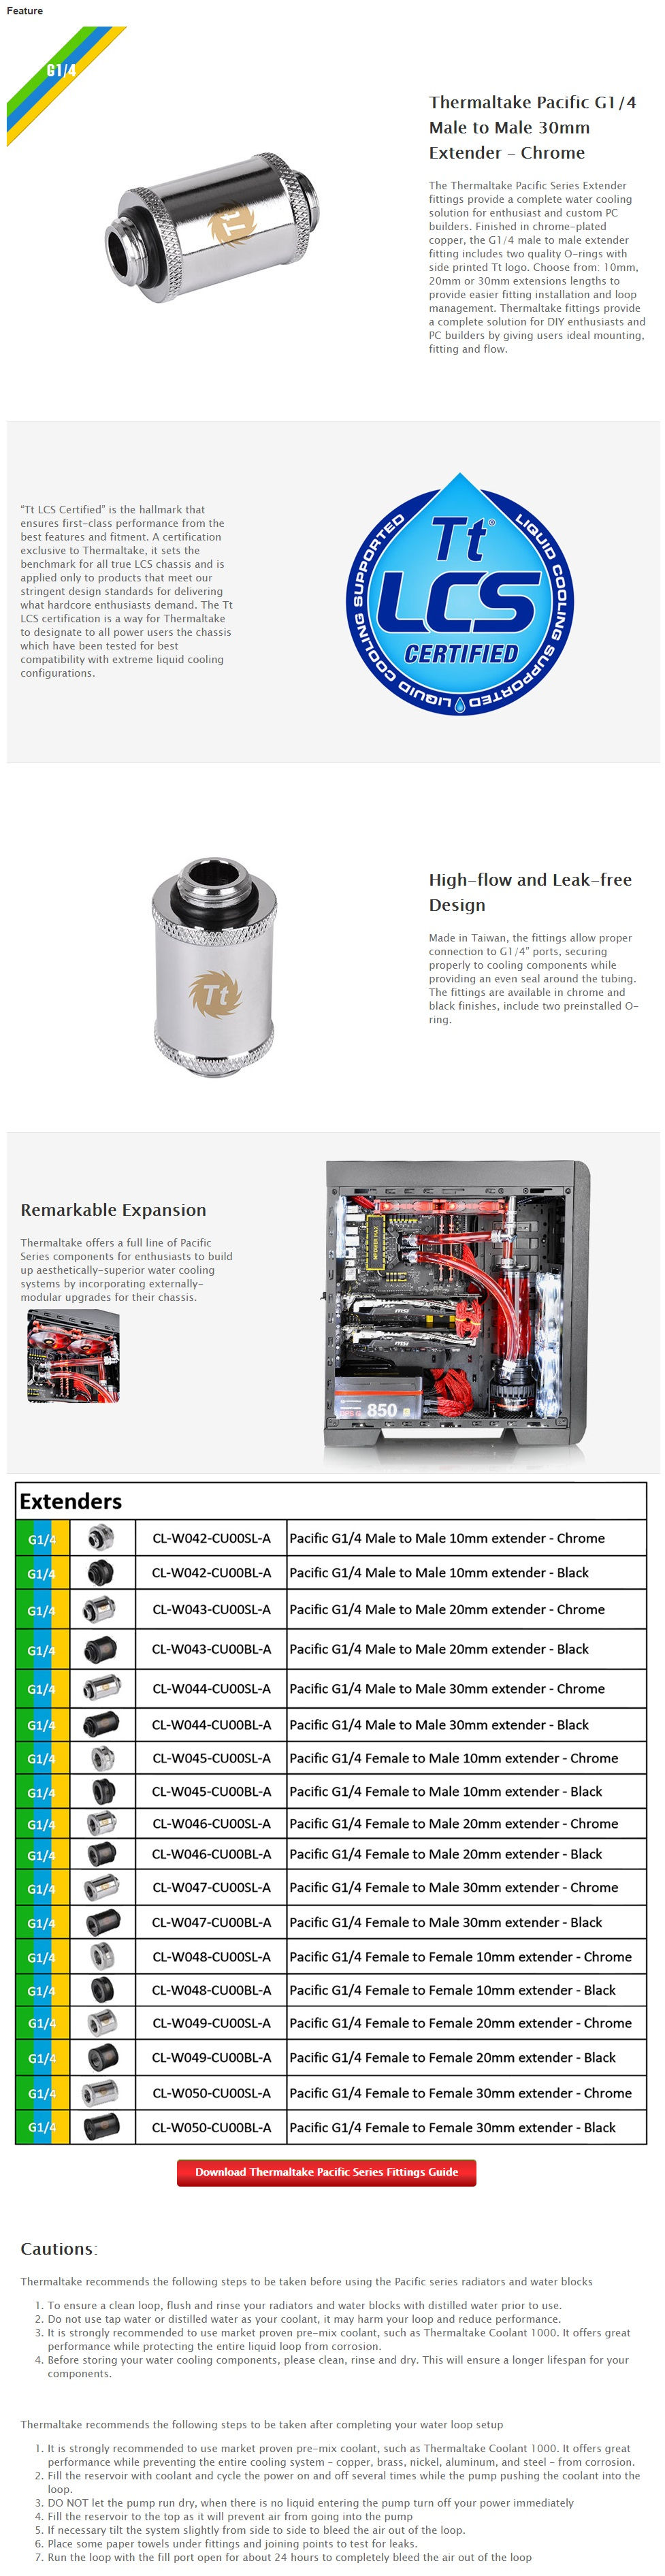 Thermaltake Pacific G1/4 Male to Male 30mm Extender - Chrome